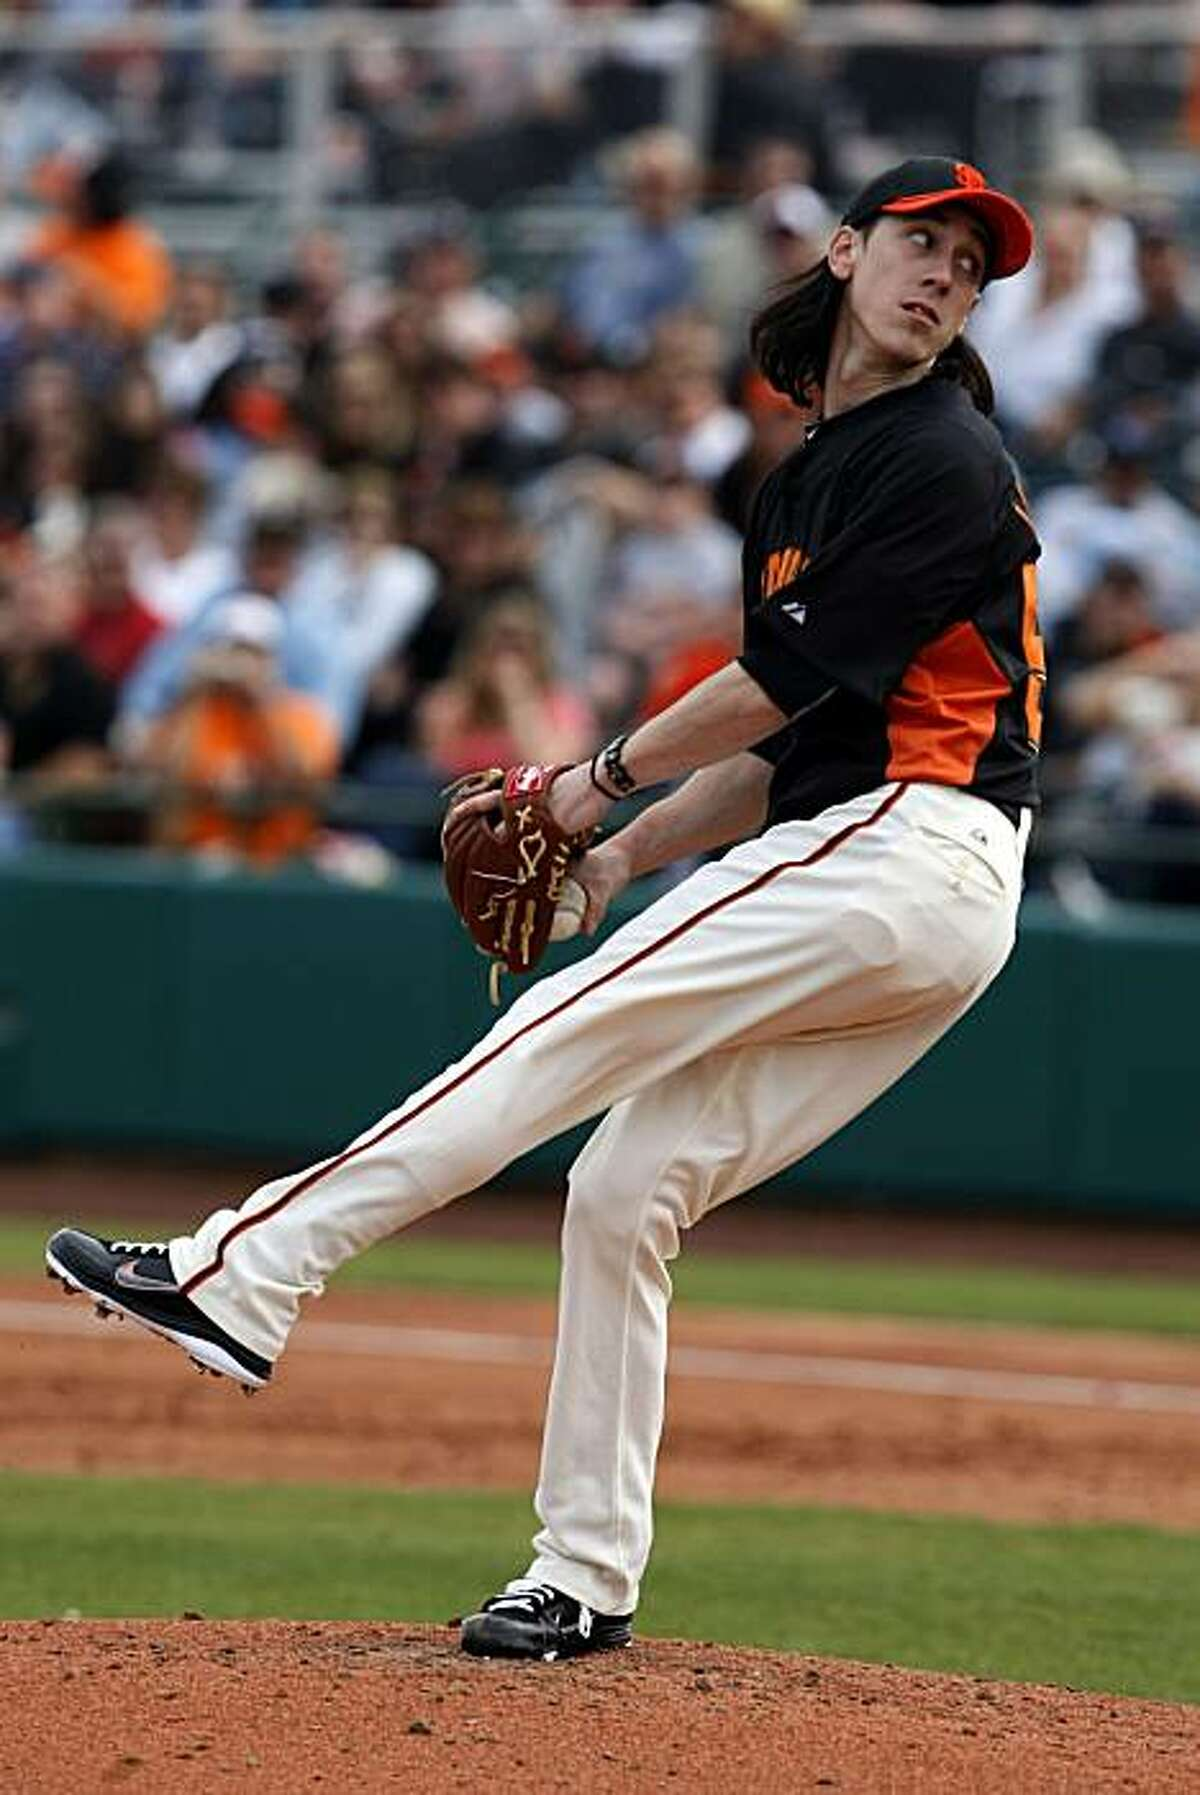 San Francisco Giants pitcher Tim Lincecum works against the Arizona Diamondbacks in the second inning of their first spring training game at Scottsdale Stadium on Friday.